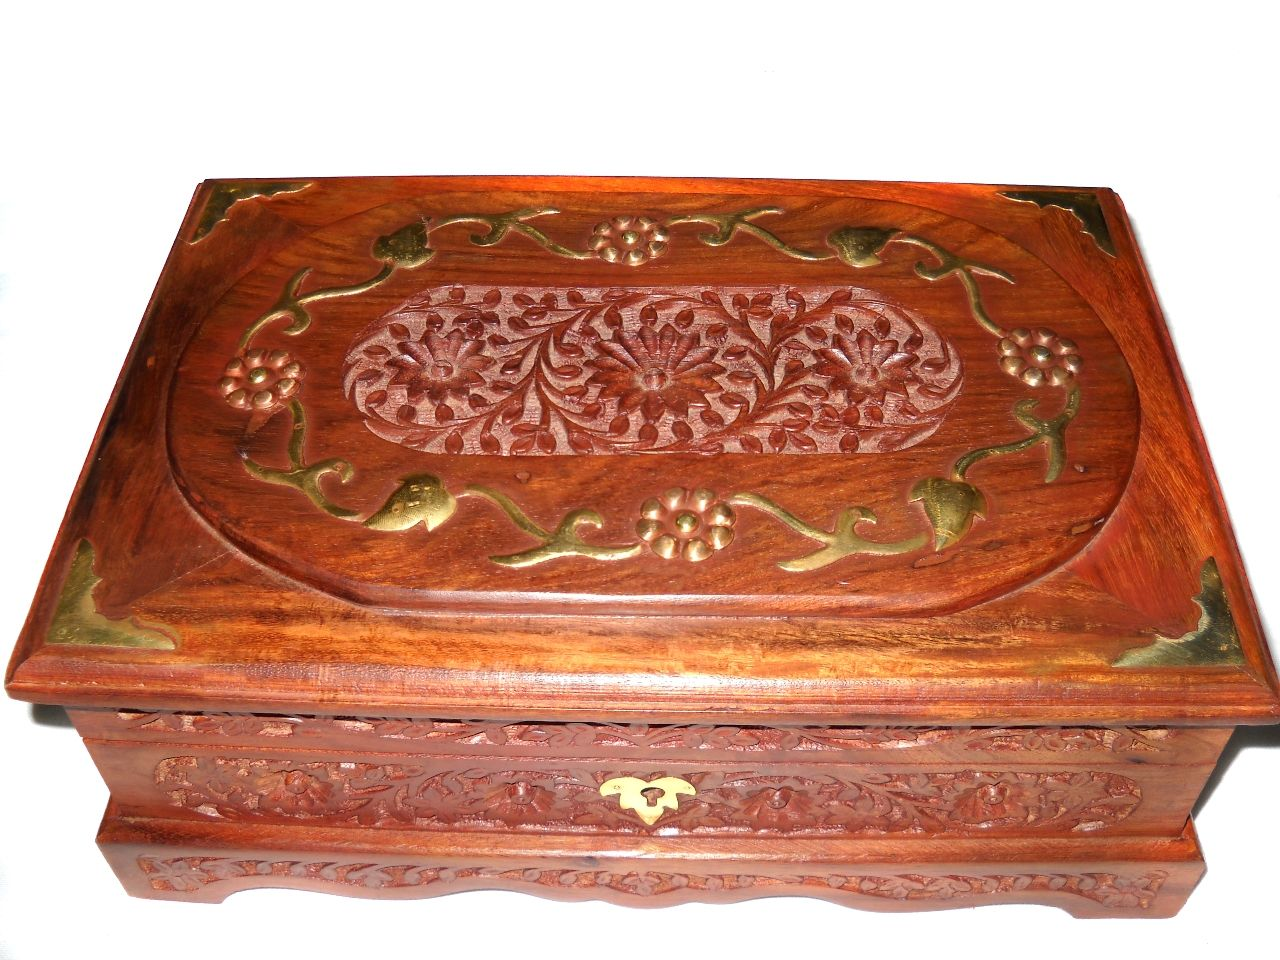 Customisable Decorative Wooden Handcarved Jewellery Box - cpwdbojb00002